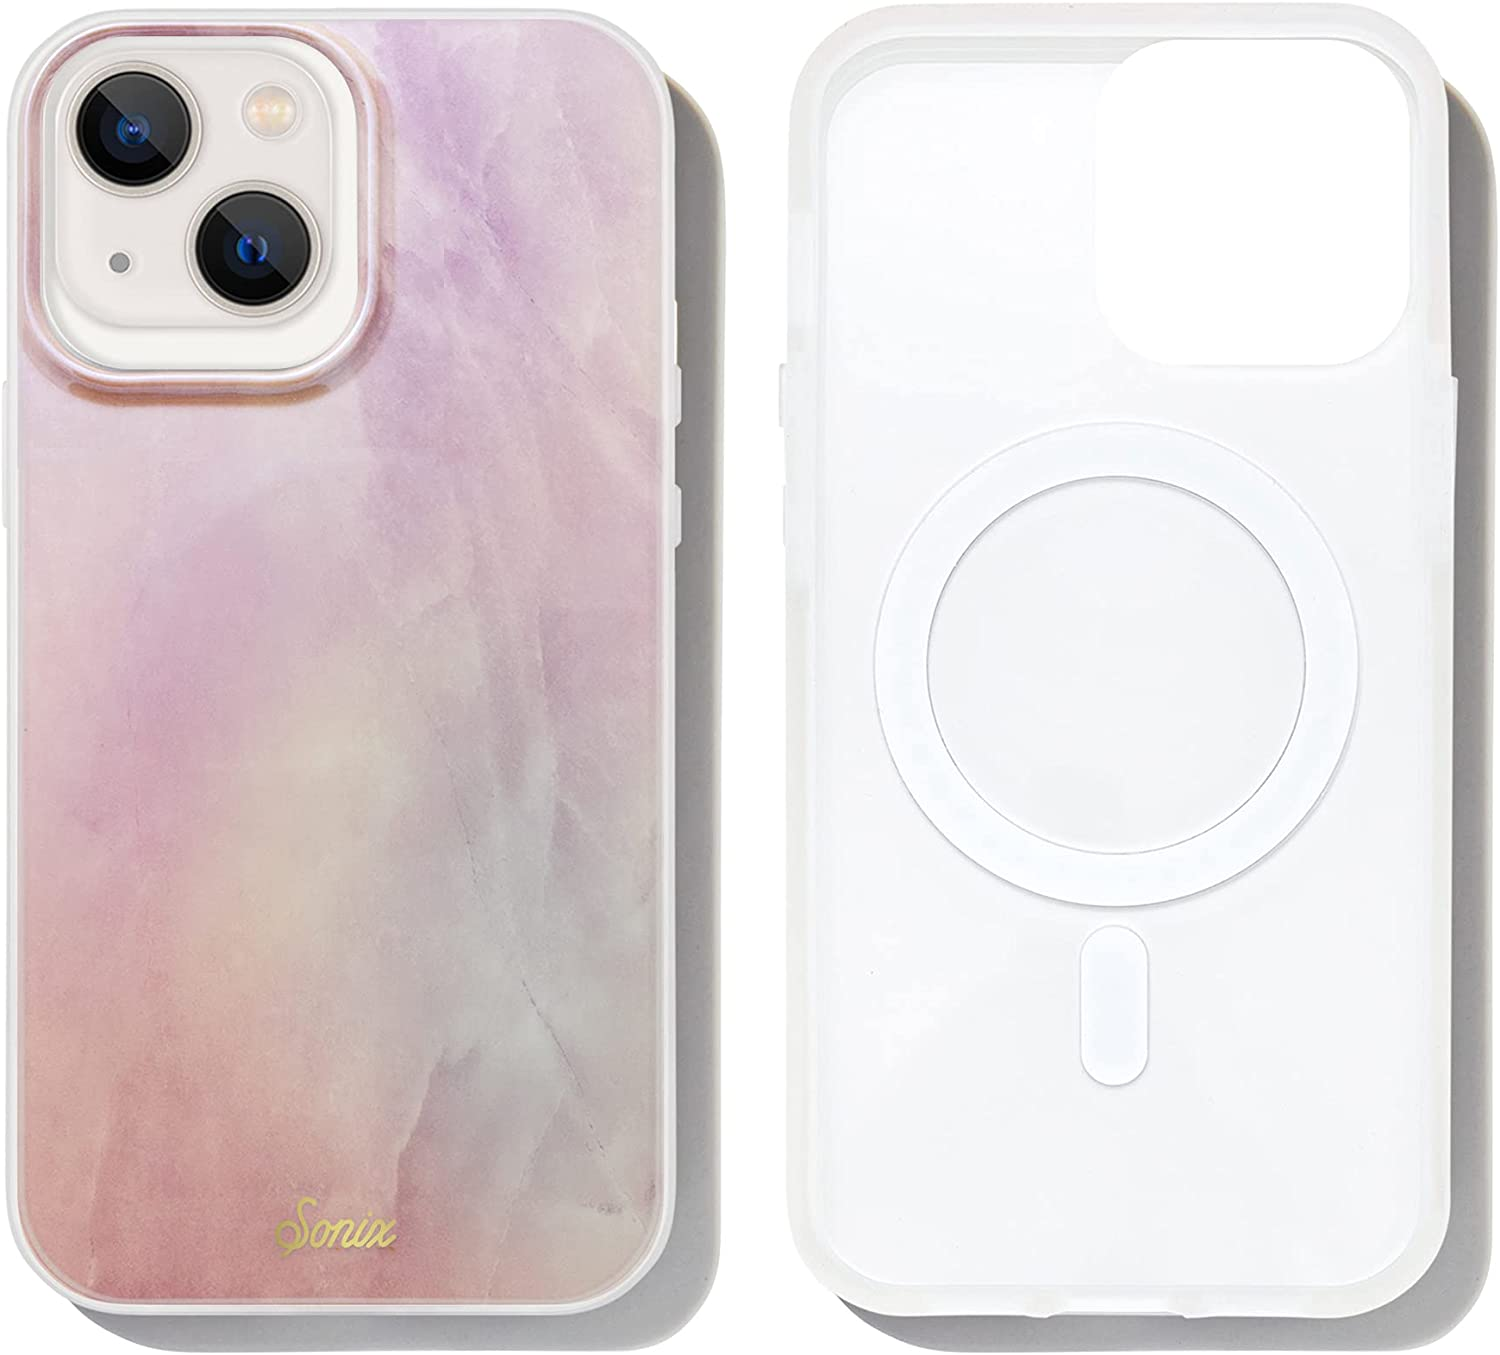 Sonix Pink Quartz Case for iPhone 13 Compatible with MagSafe Charging [10ft Drop Tested] Protective Pink Marble Cute Cover for Apple iPhone 13